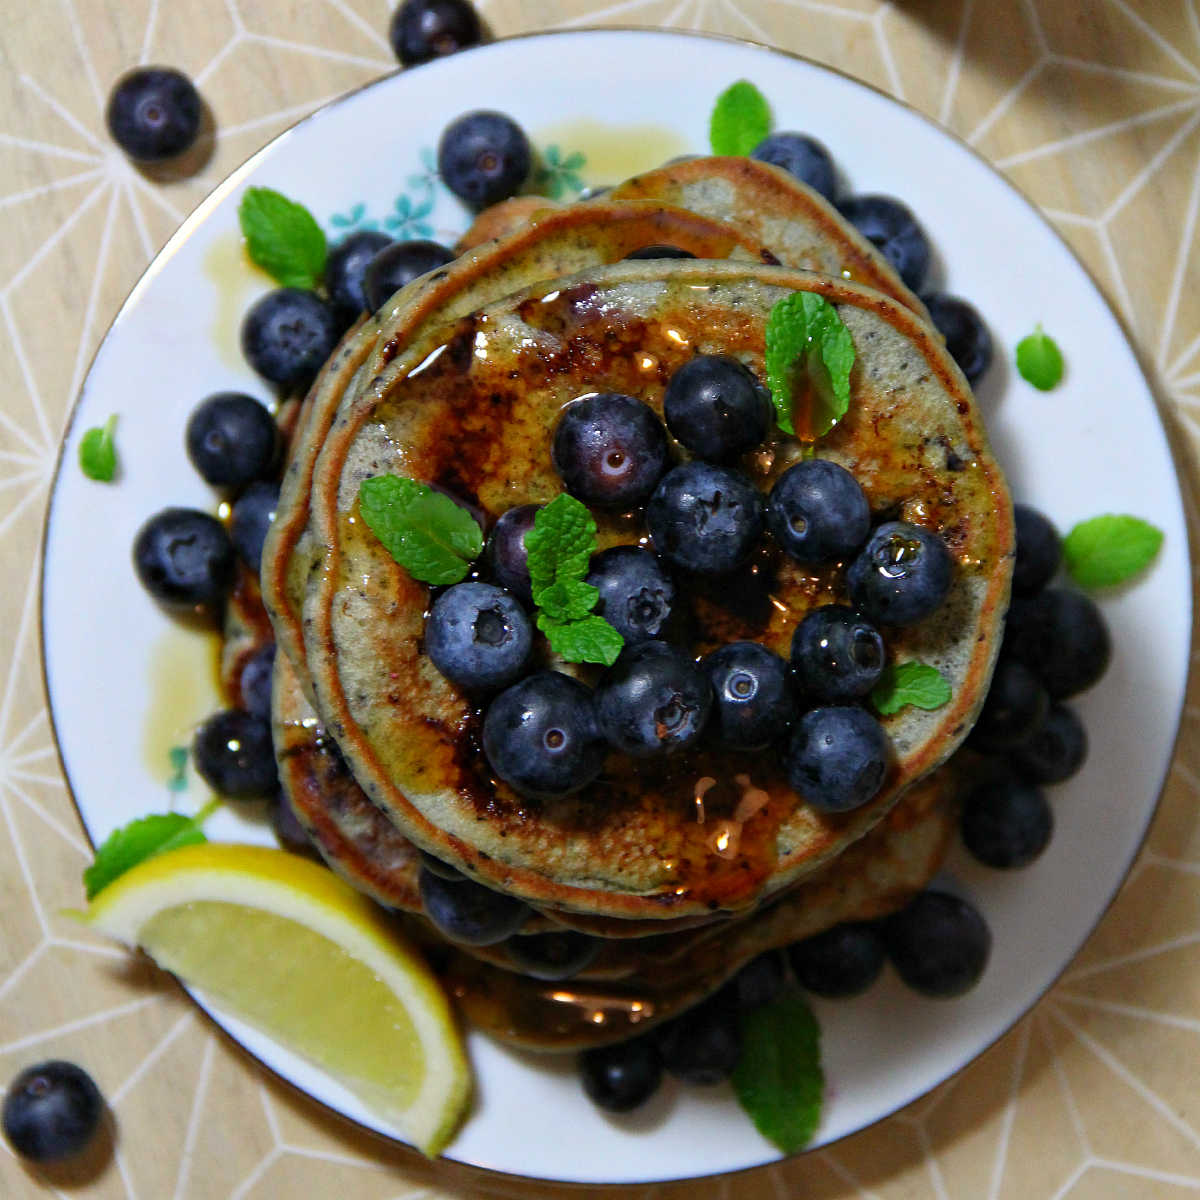 Vegan Blueberry Pancakes - The Vegan Eskimo